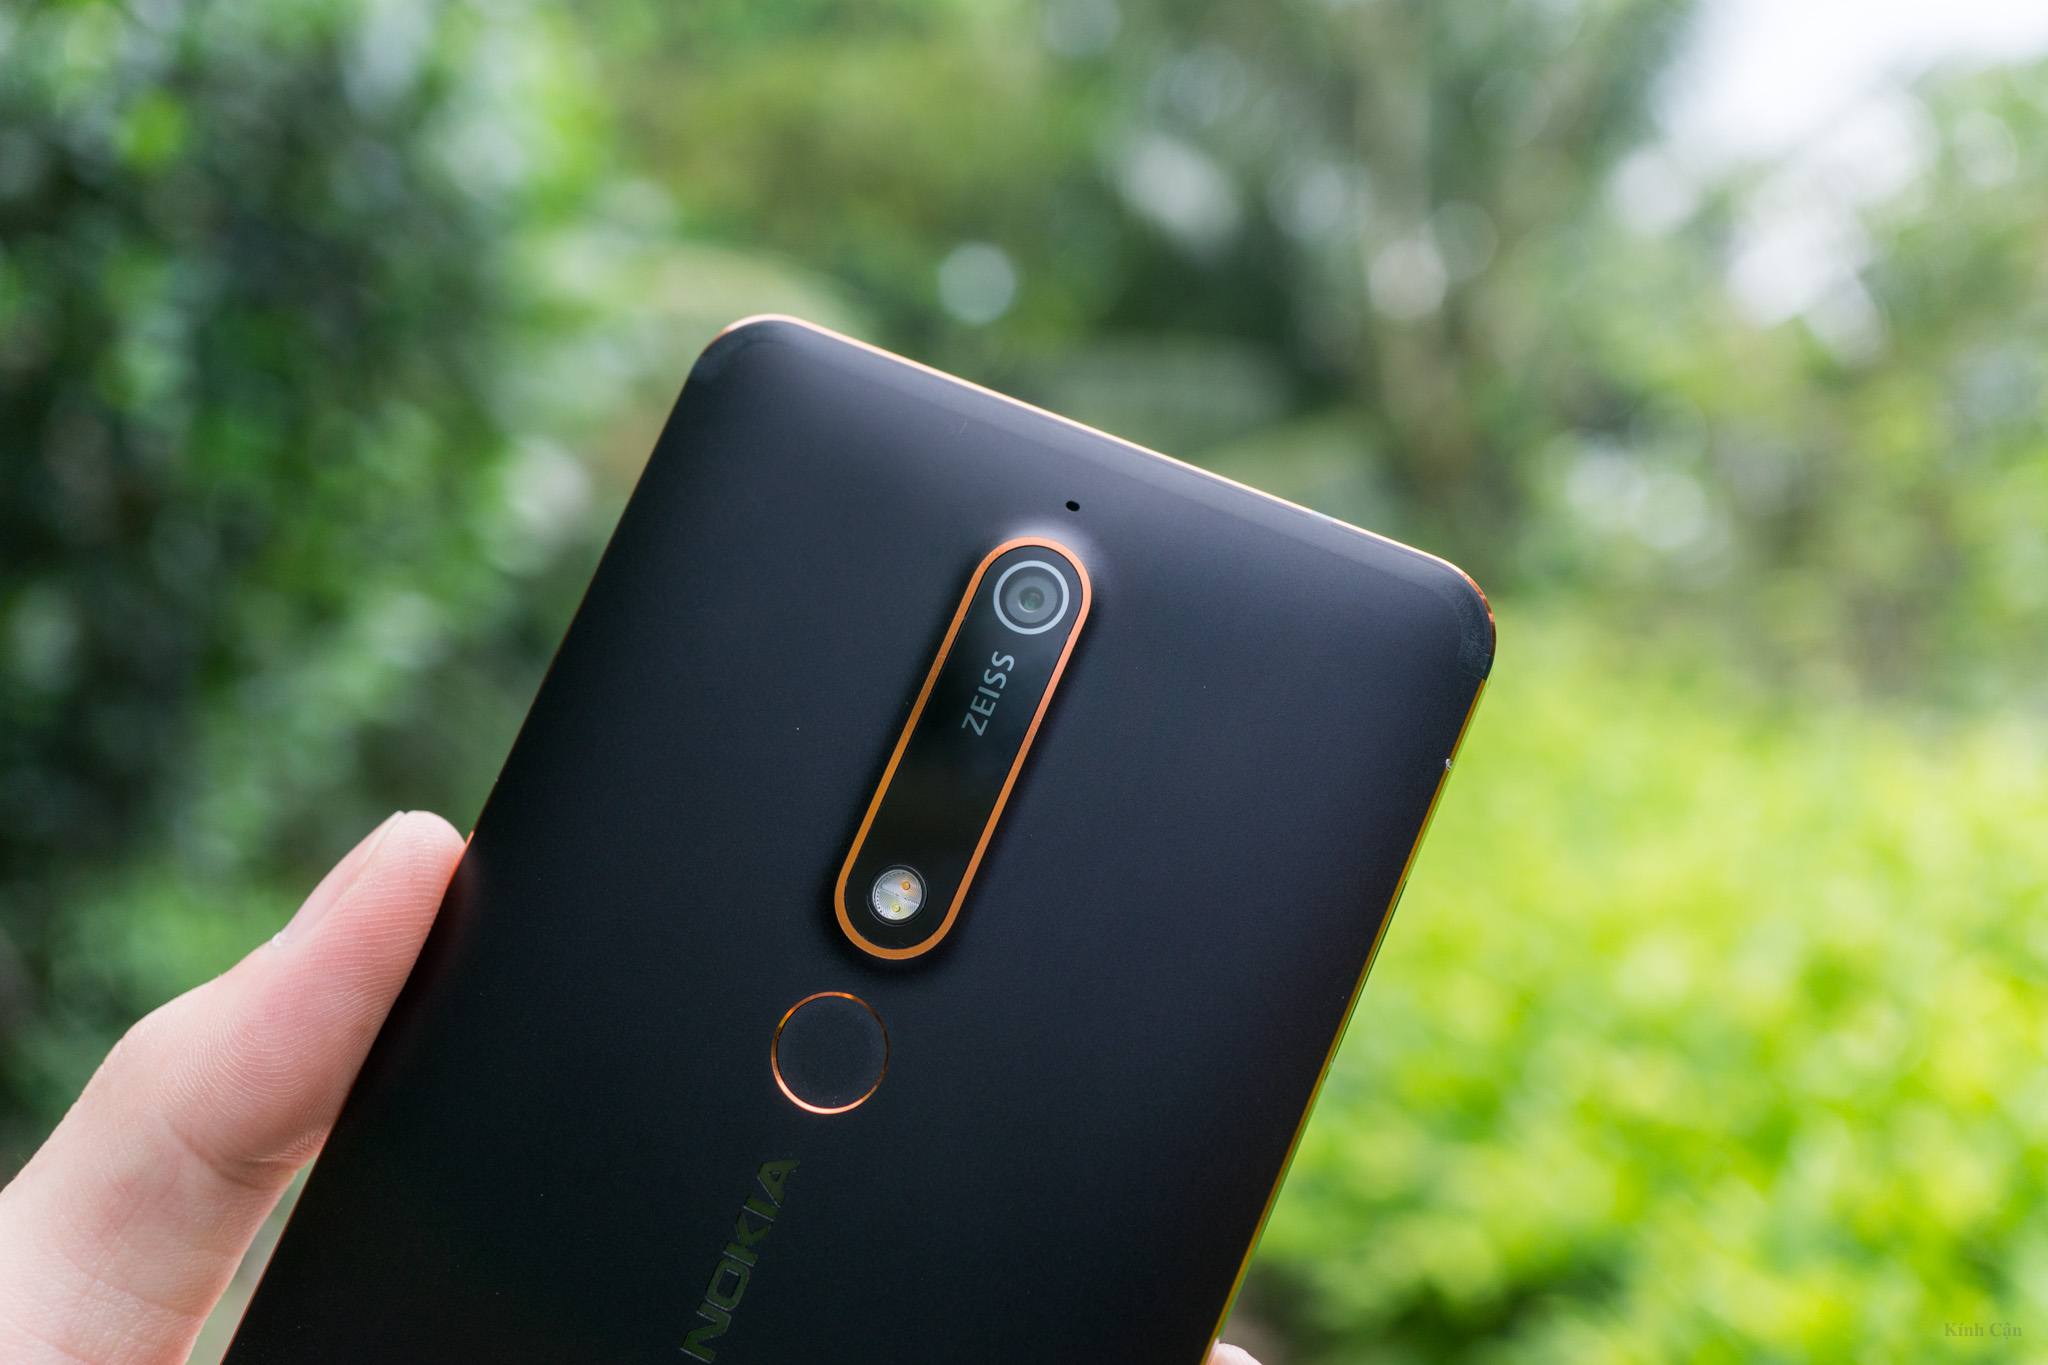 Android P Nokia 6 mới-7.jpg